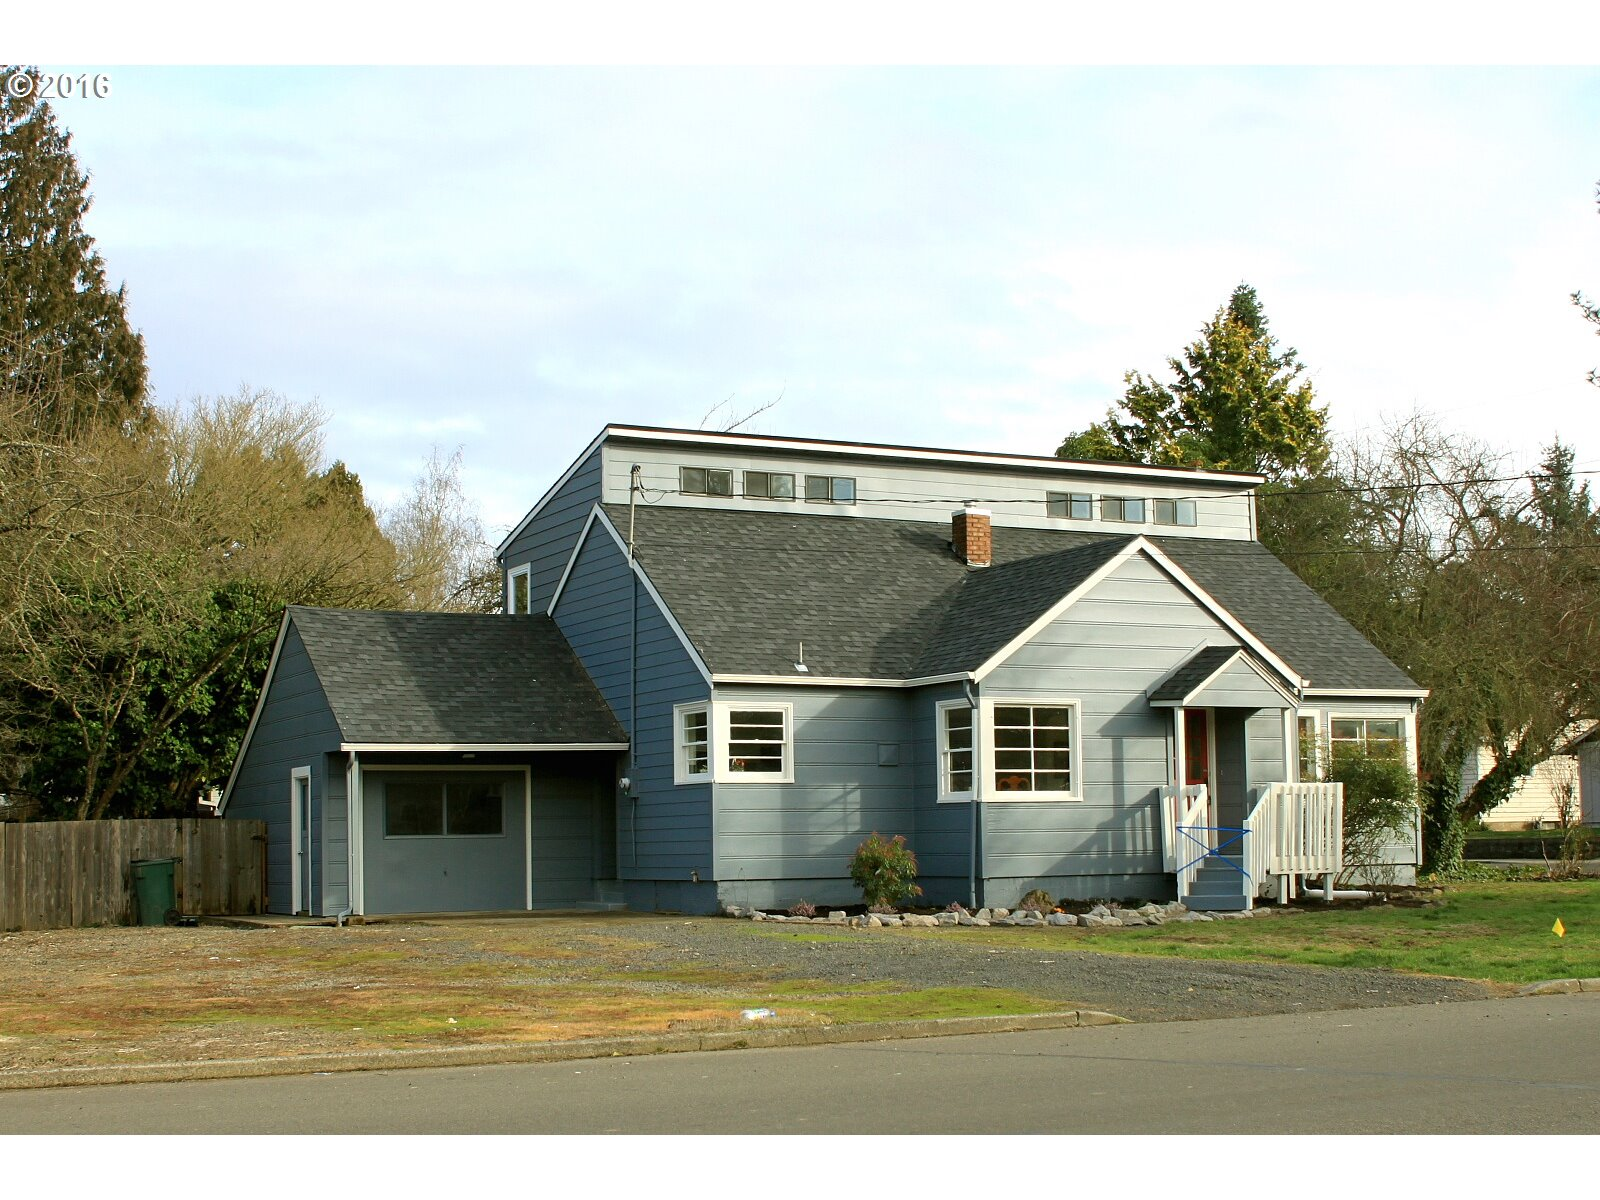 1803 Hawthorne St Forest Grove Or 97116 Mls 16137046